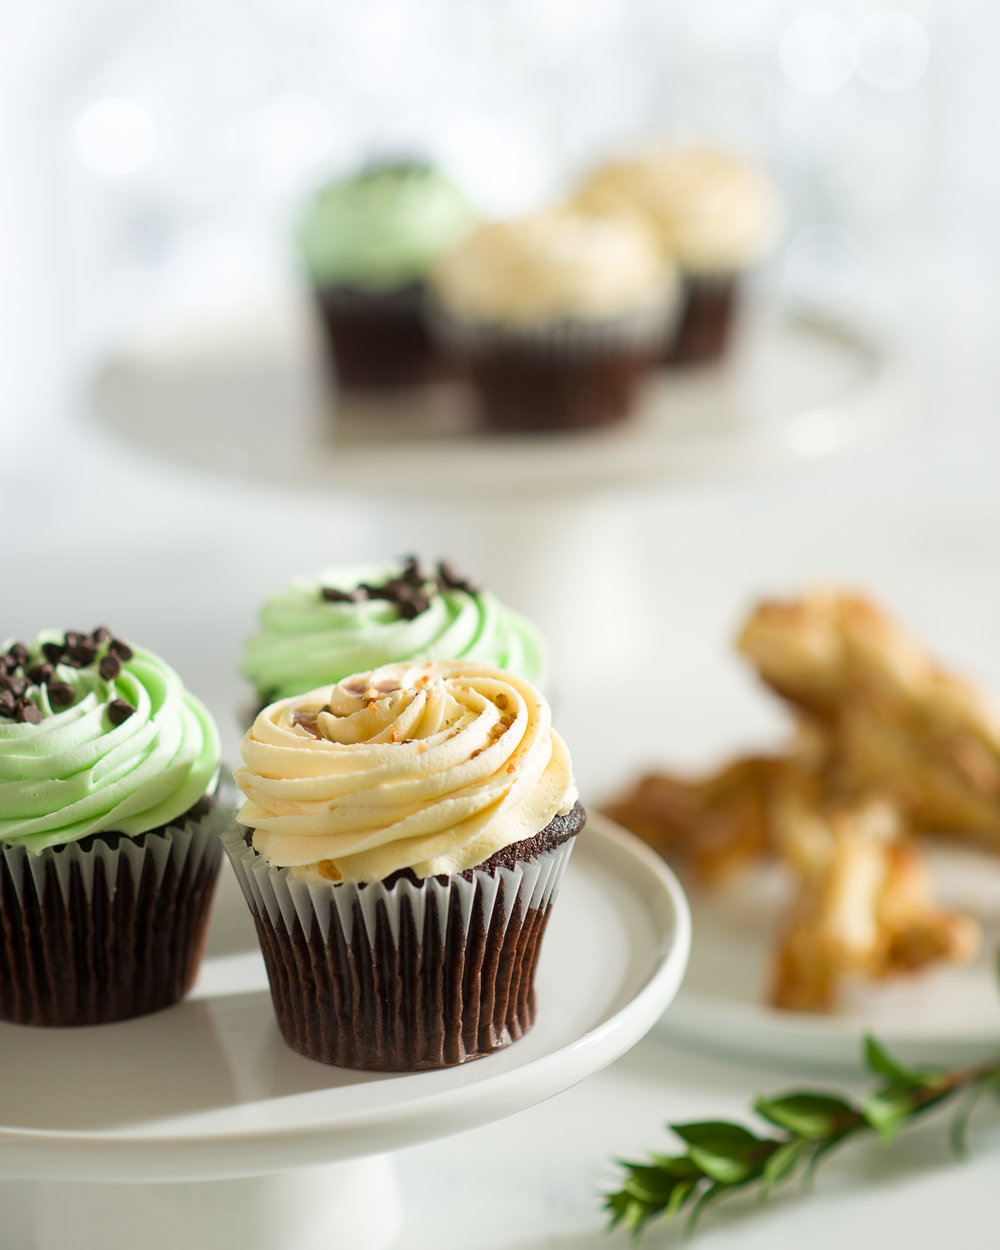 Mint and caramel cupcakes Vancouver food photograph